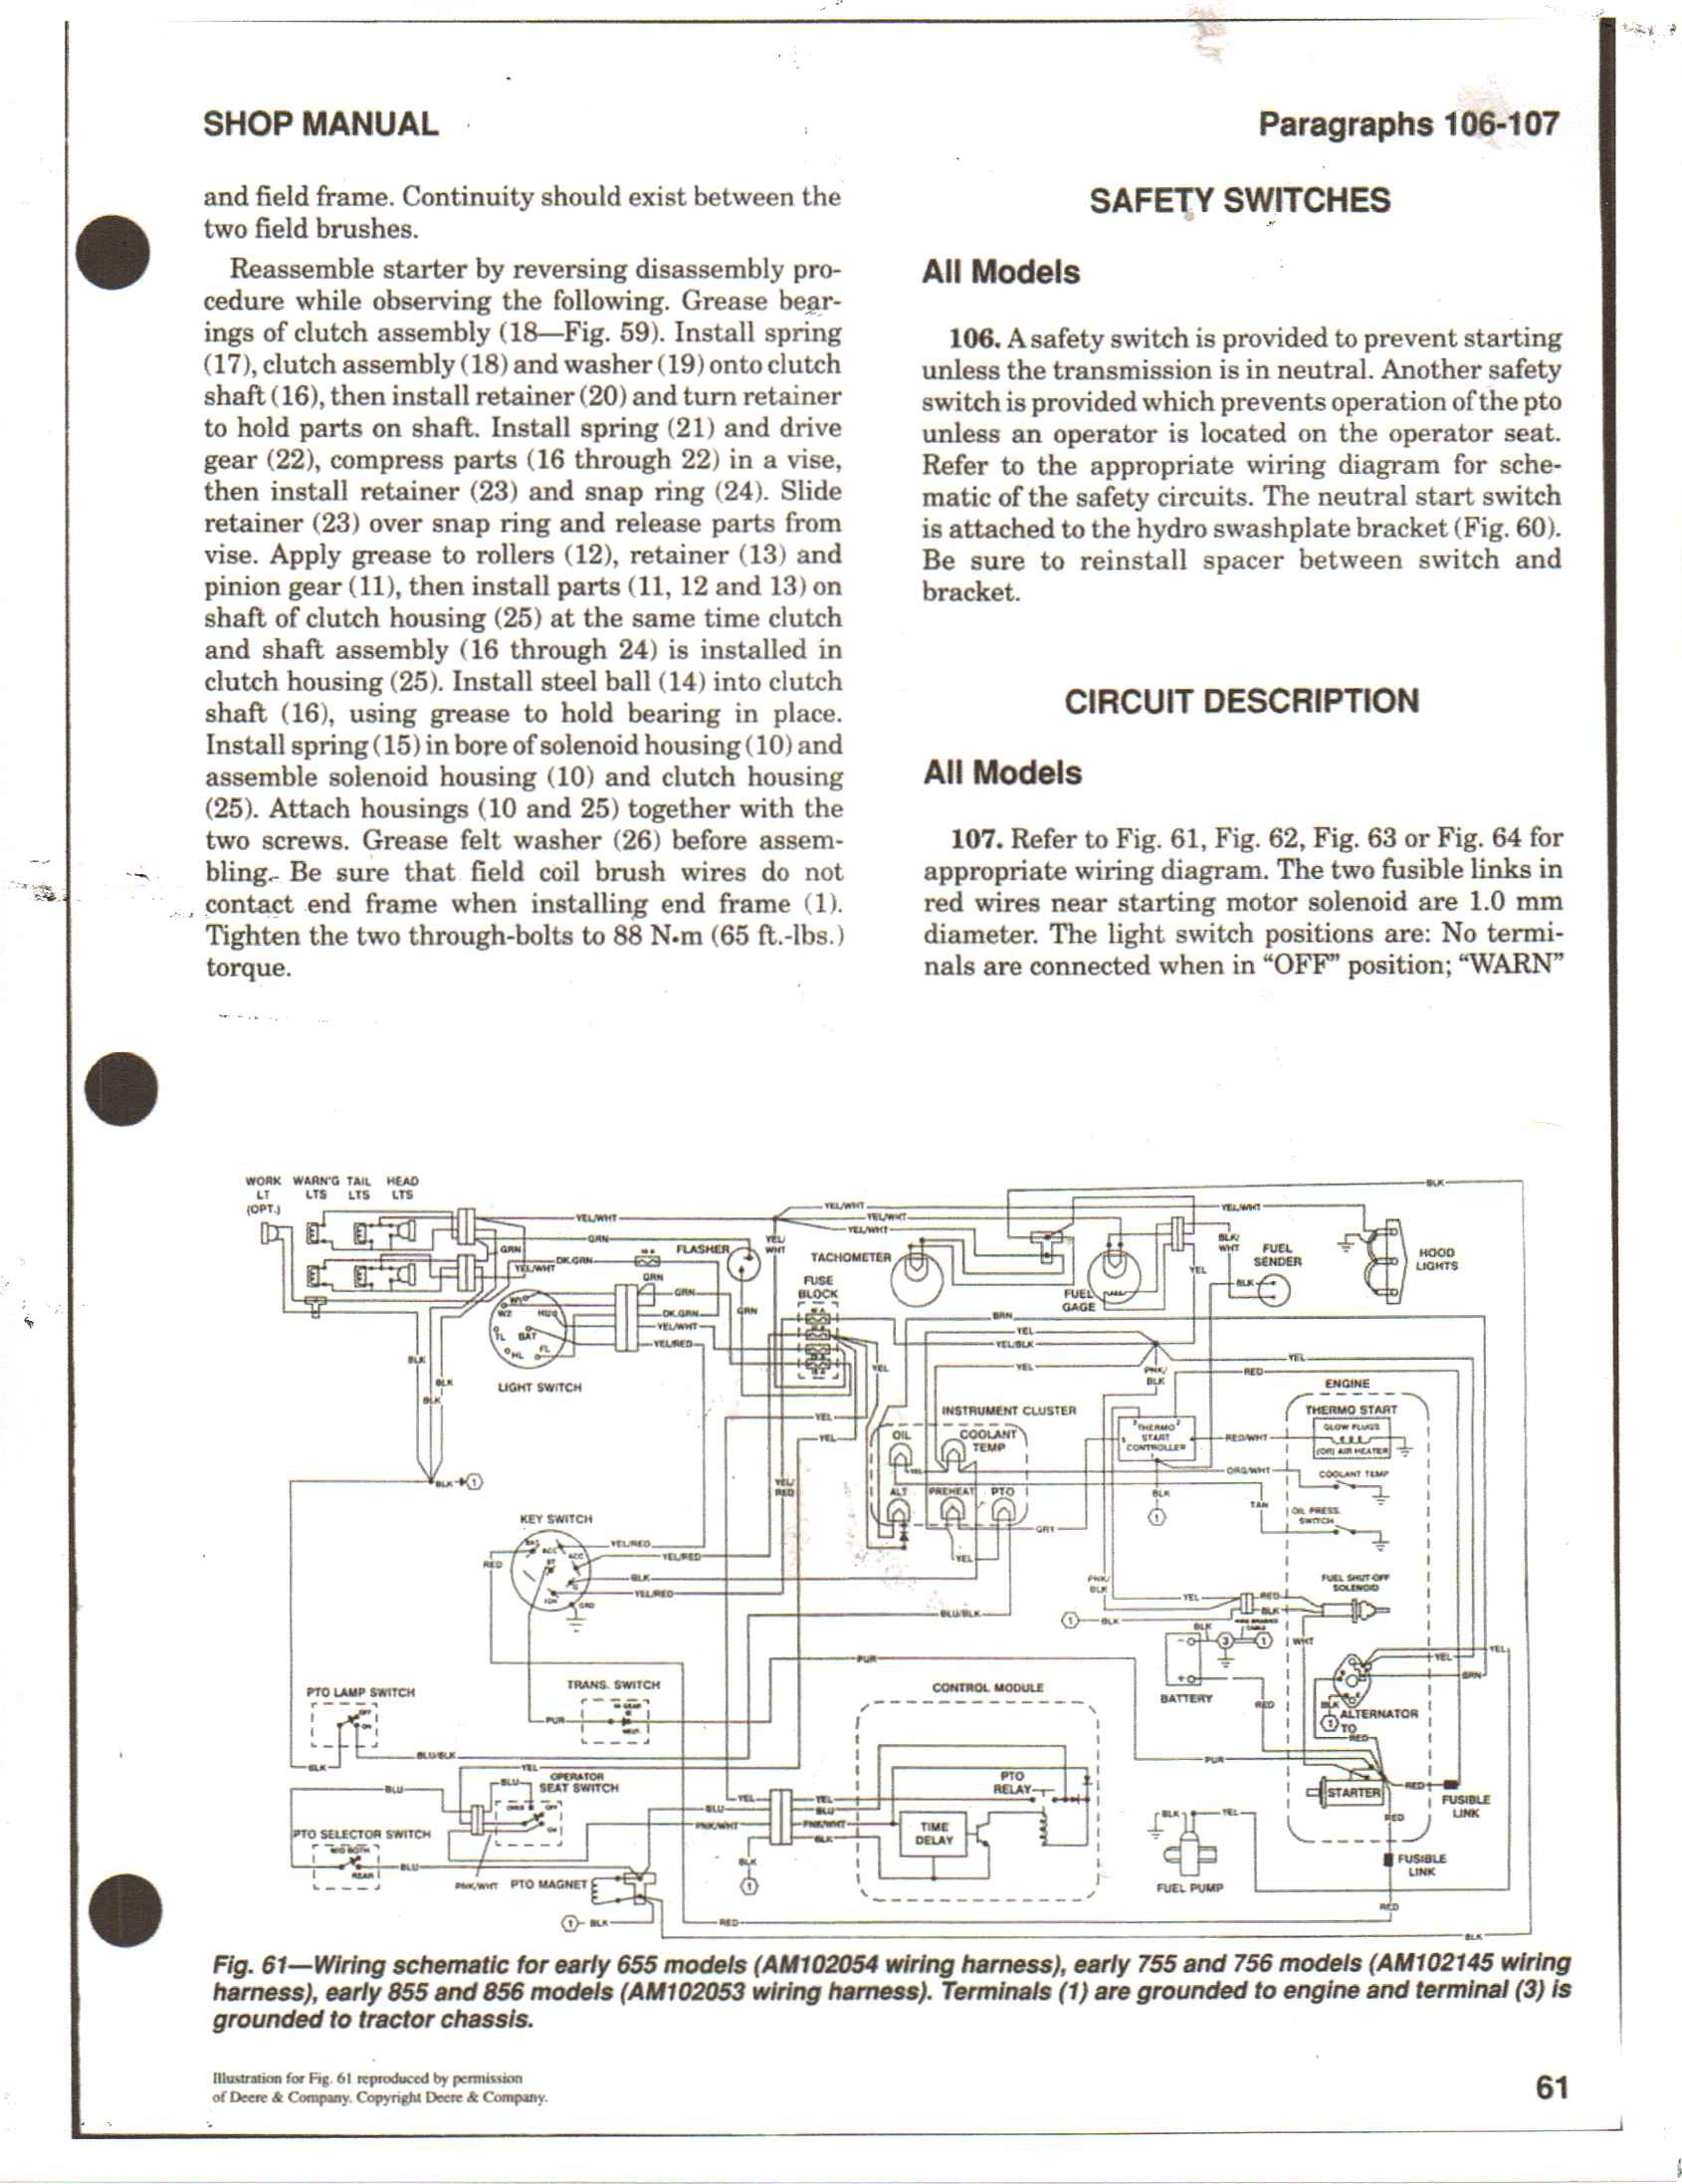 Wiring Diagram 318 John Deere 56d25 John Deere 655 Wiring Diagram Of Wiring Diagram 318 John Deere